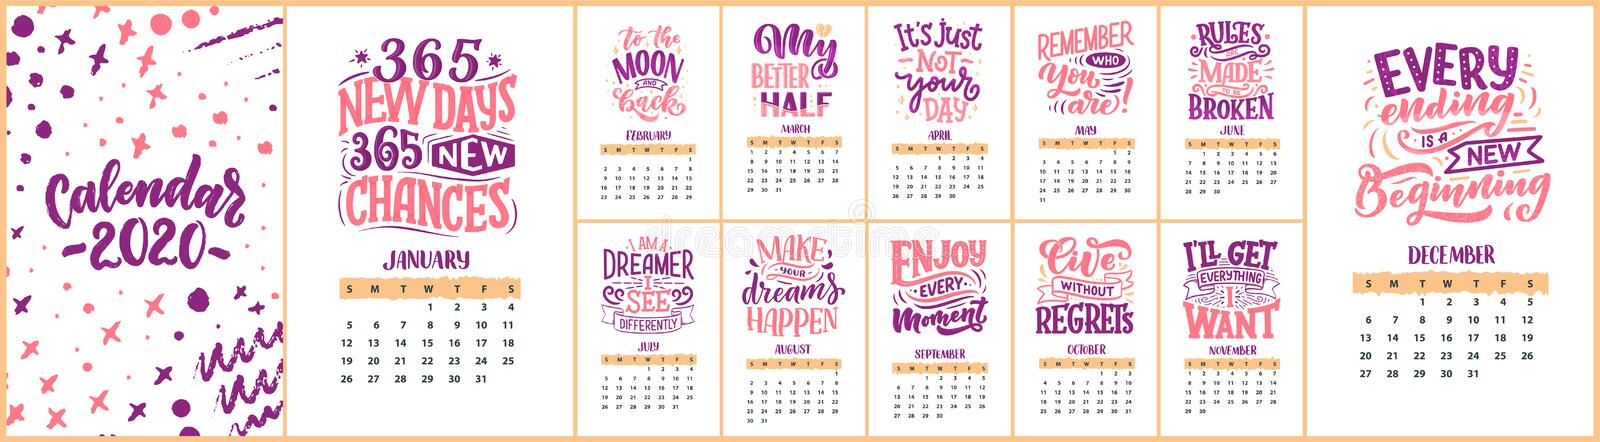 Compositions modernes en lettrage de typographie calendrier 2020 avec des citations drôles de motivation Illustrations tir?es par photographie stock